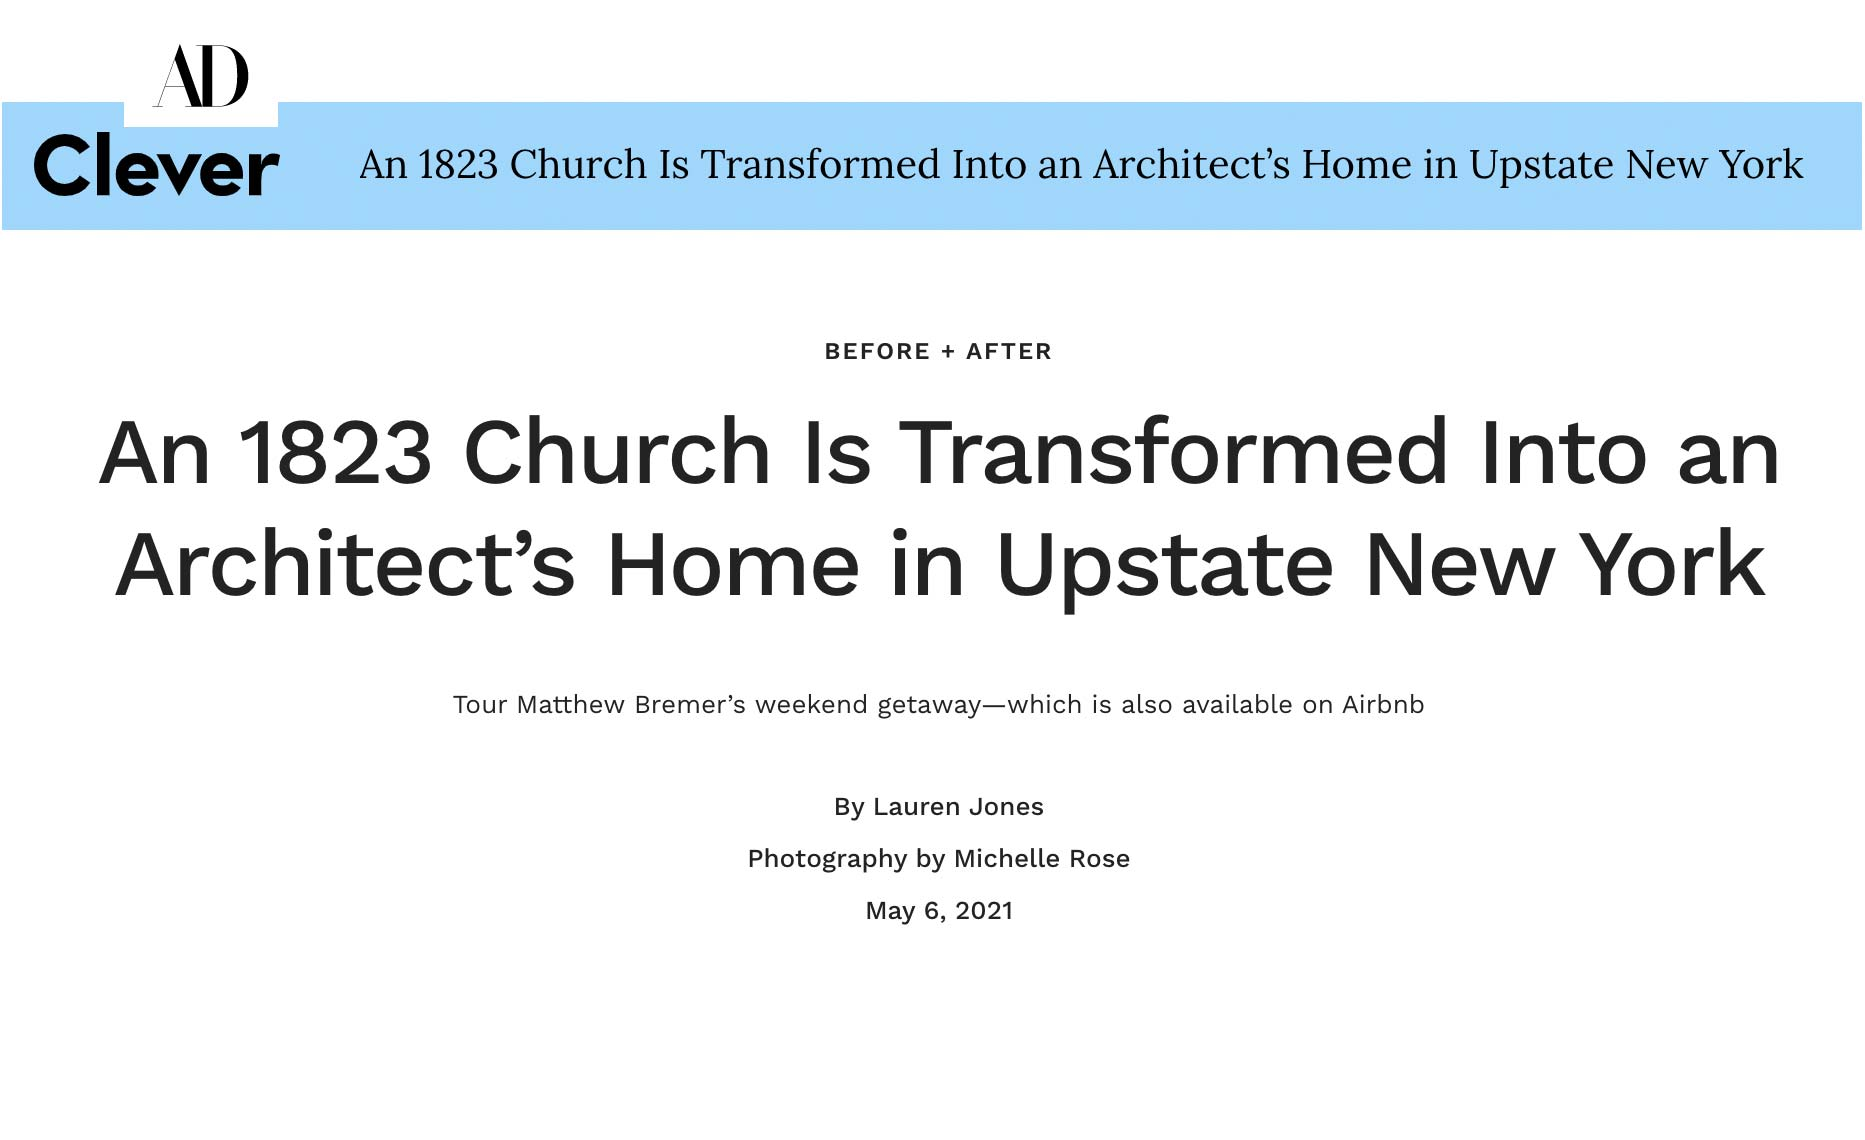 Church-House-AD-Clever-article-1